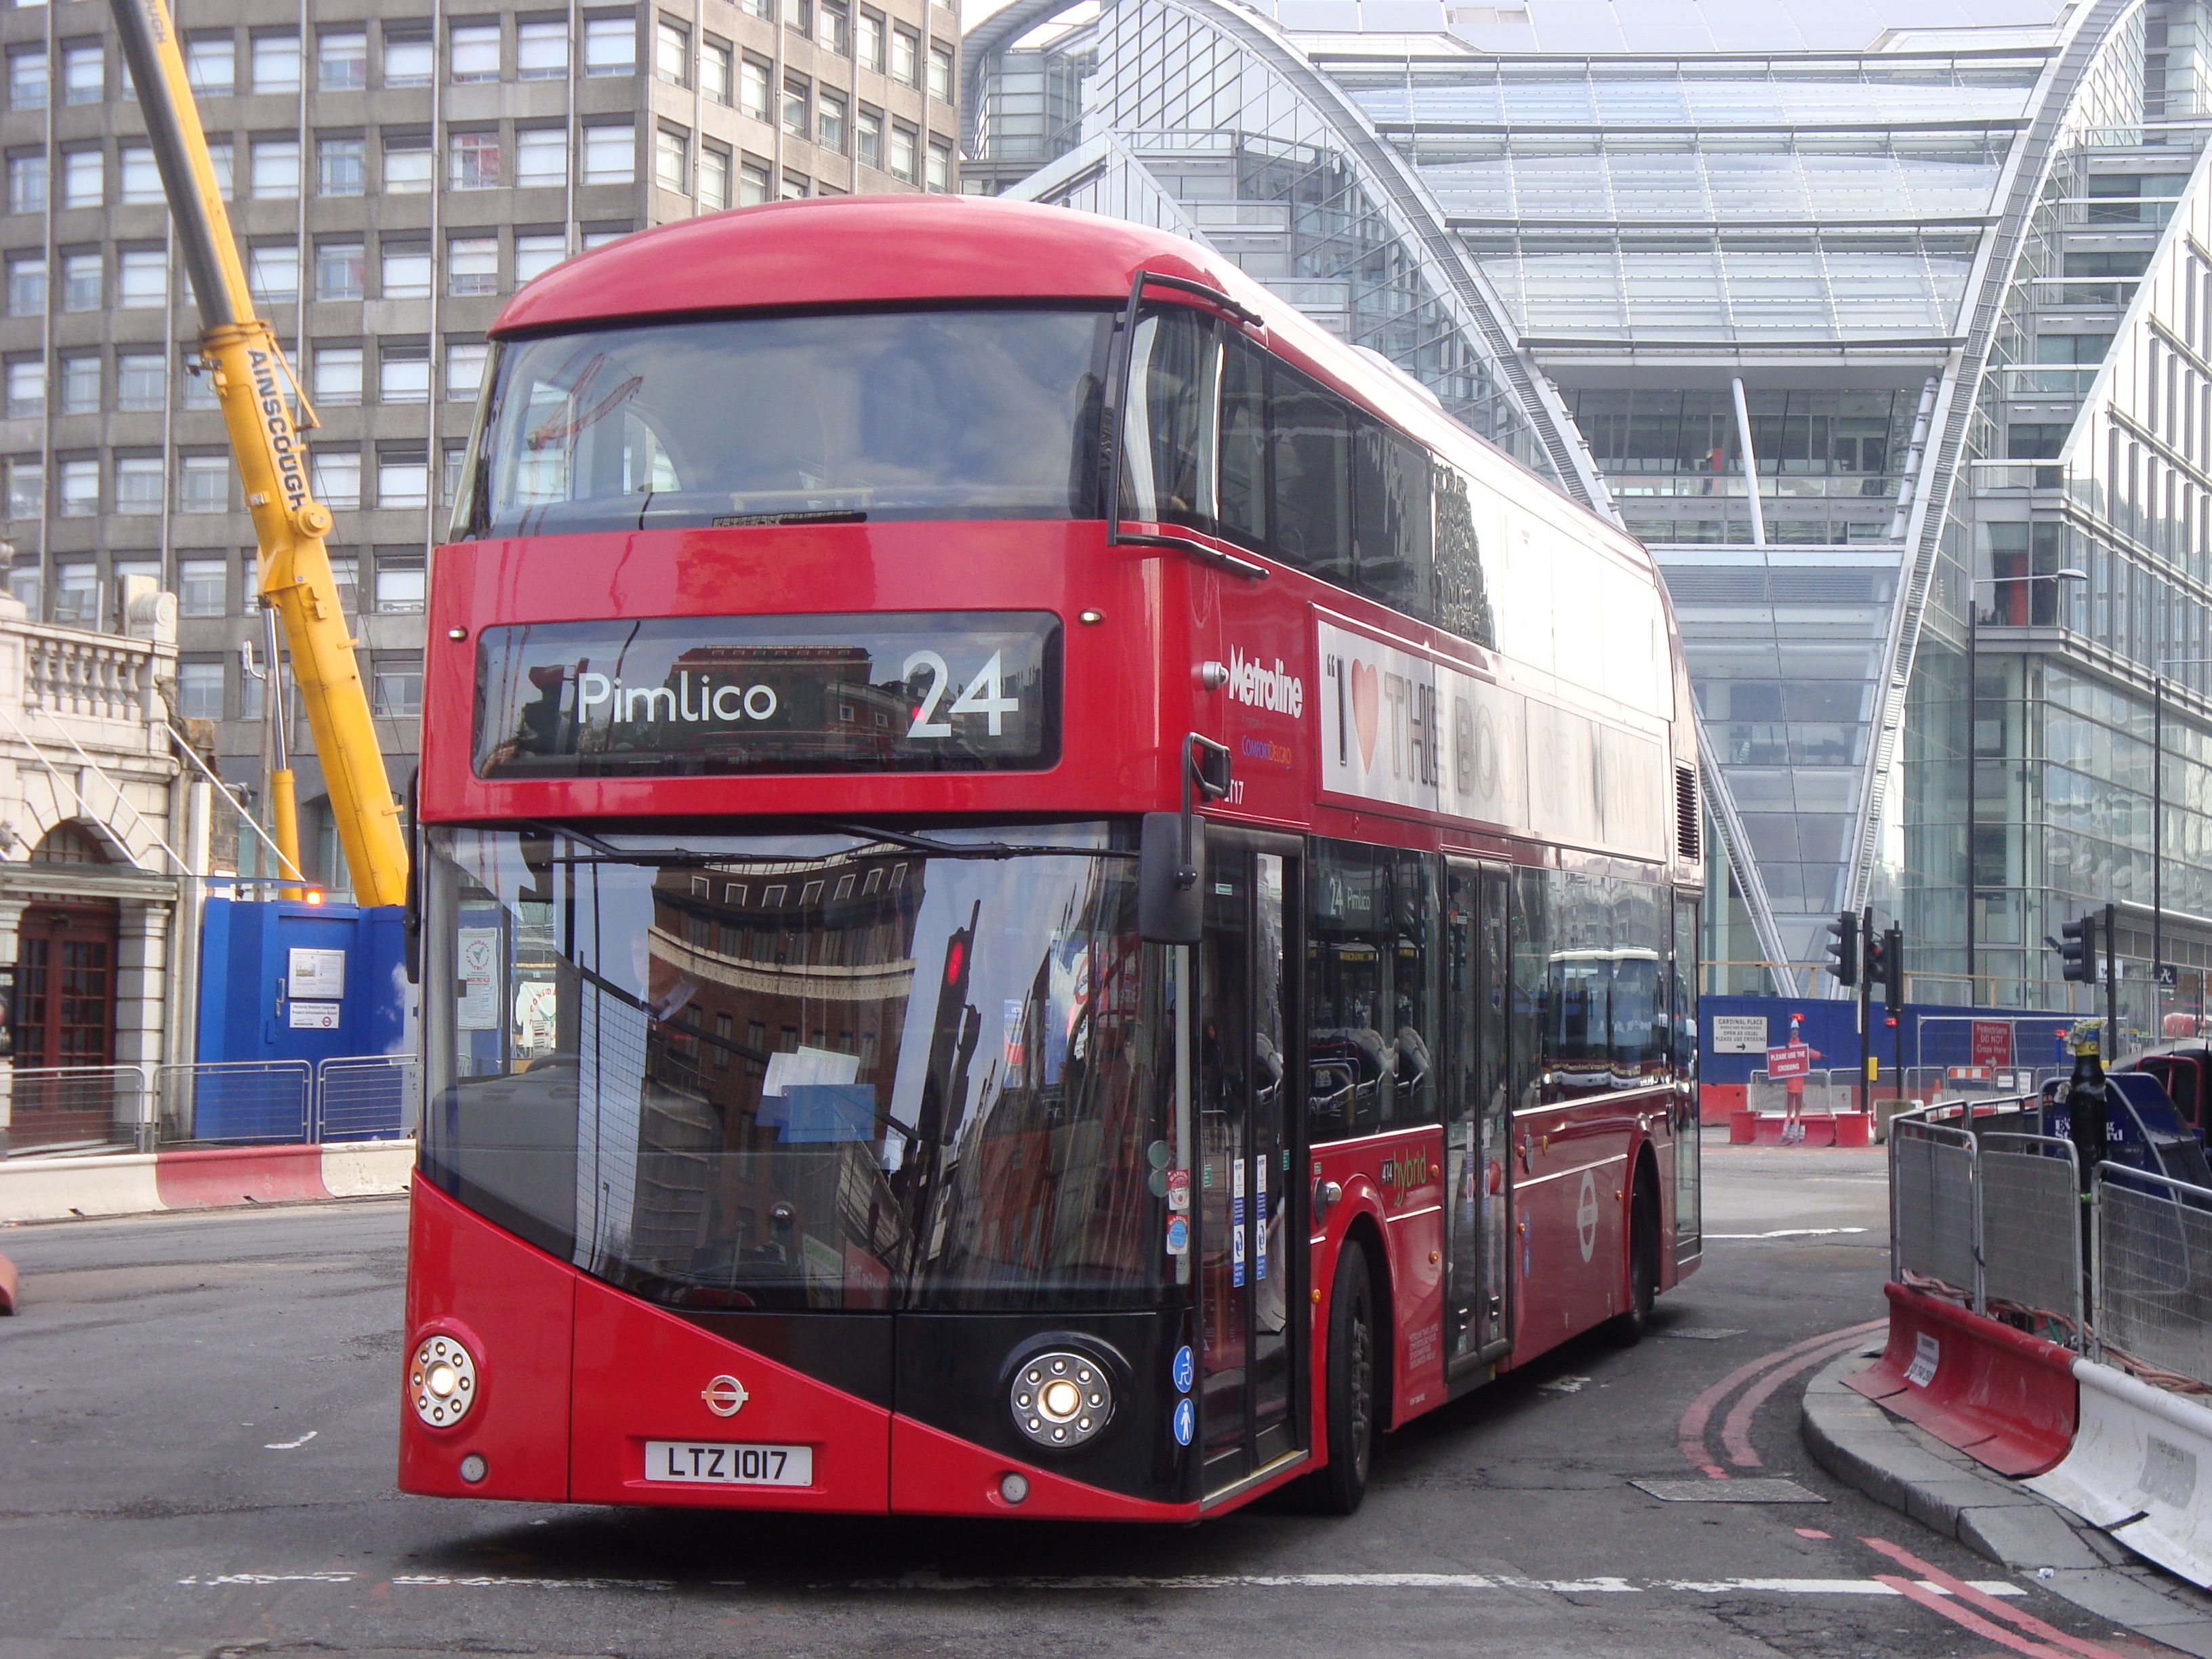 N24 Now London Buses Route 24 Wikipedia